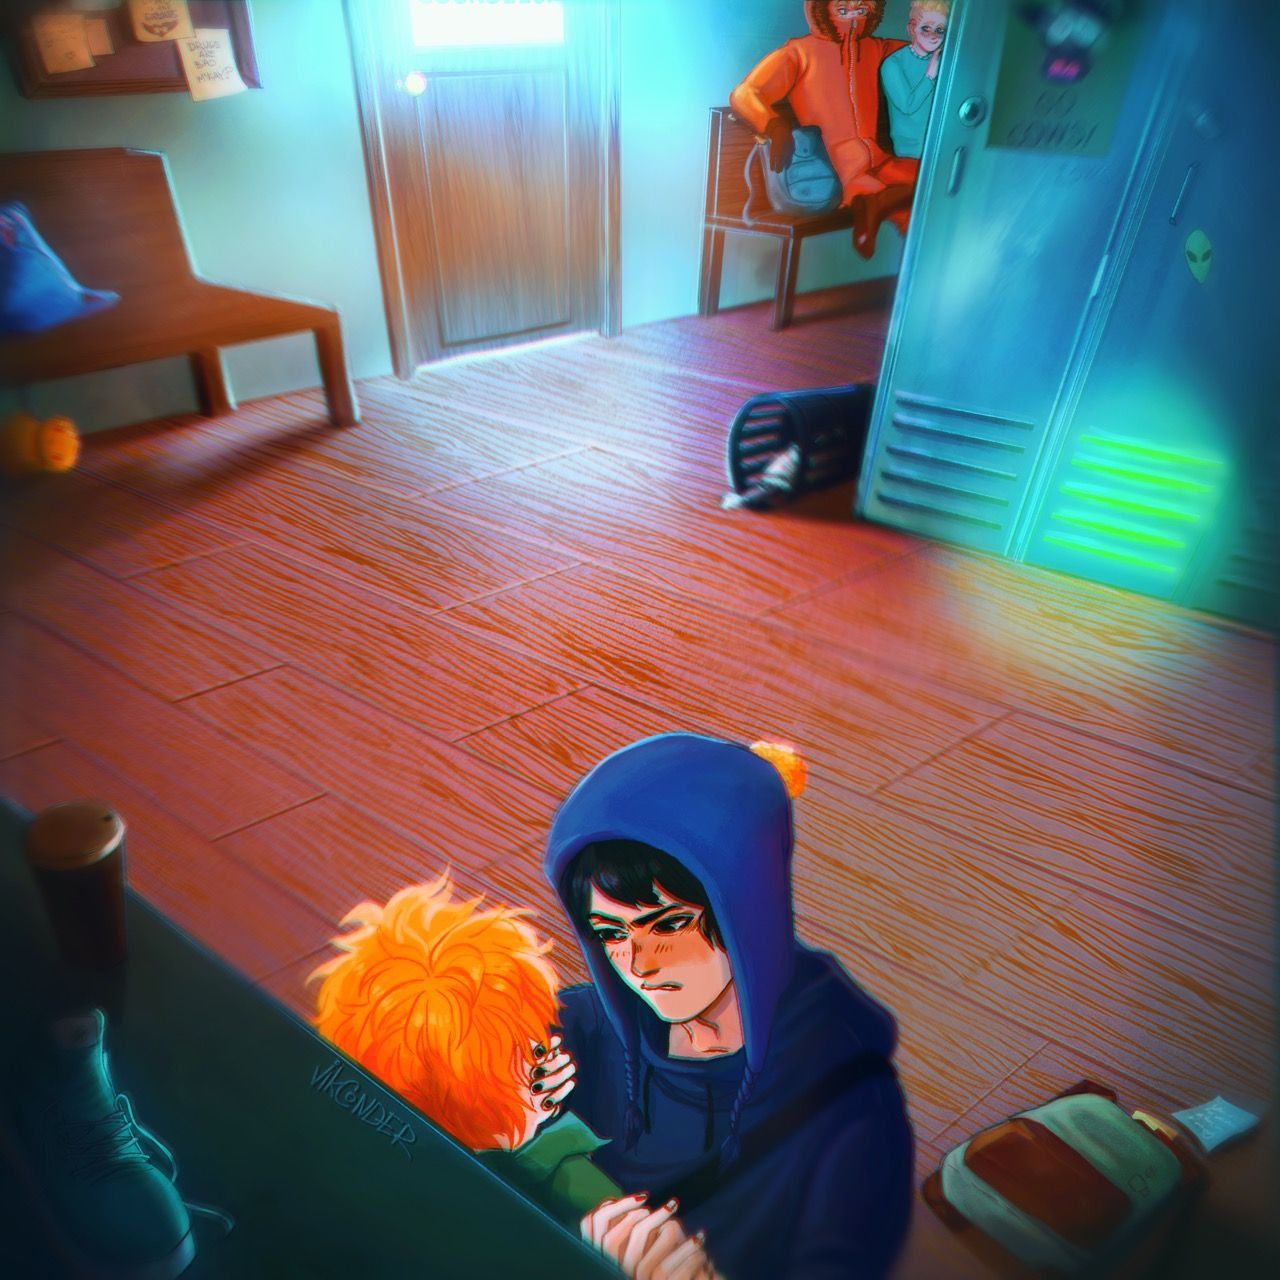 Craig x Tweek & Kenny x Butters ~ School days are the same